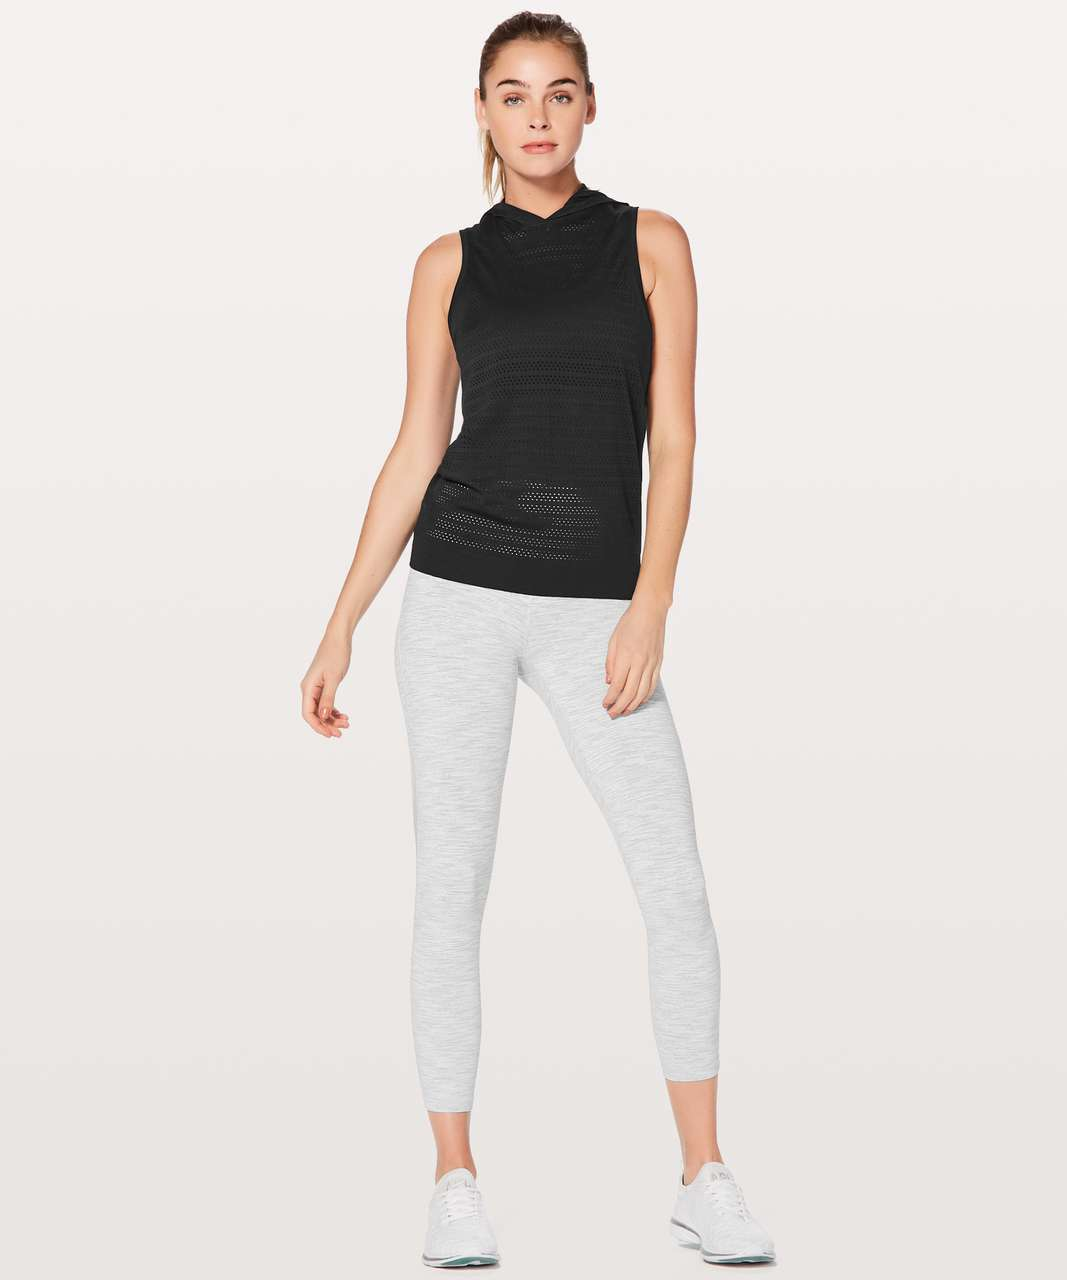 Lululemon Breeze By Hooded Tank Squad - Black / Black